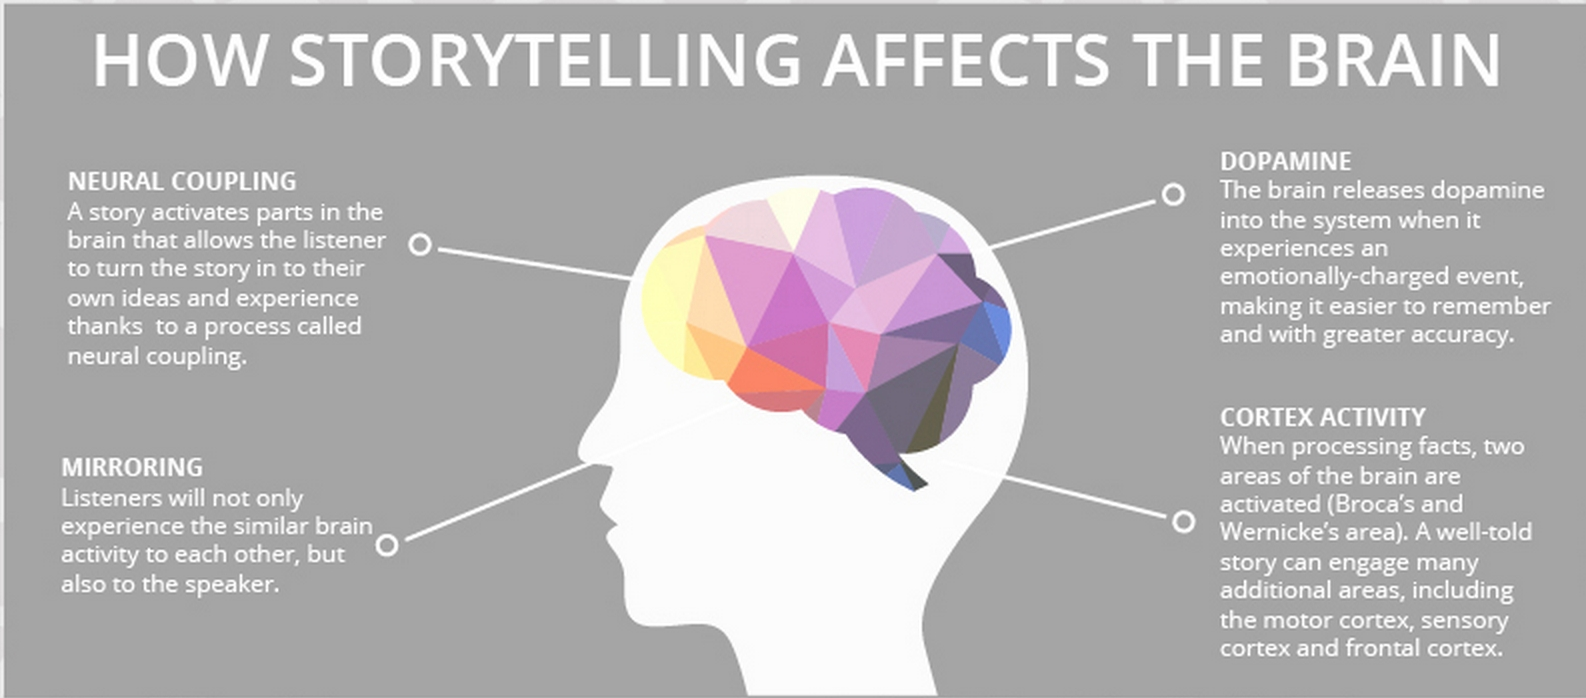 Storytelling and the brain 1